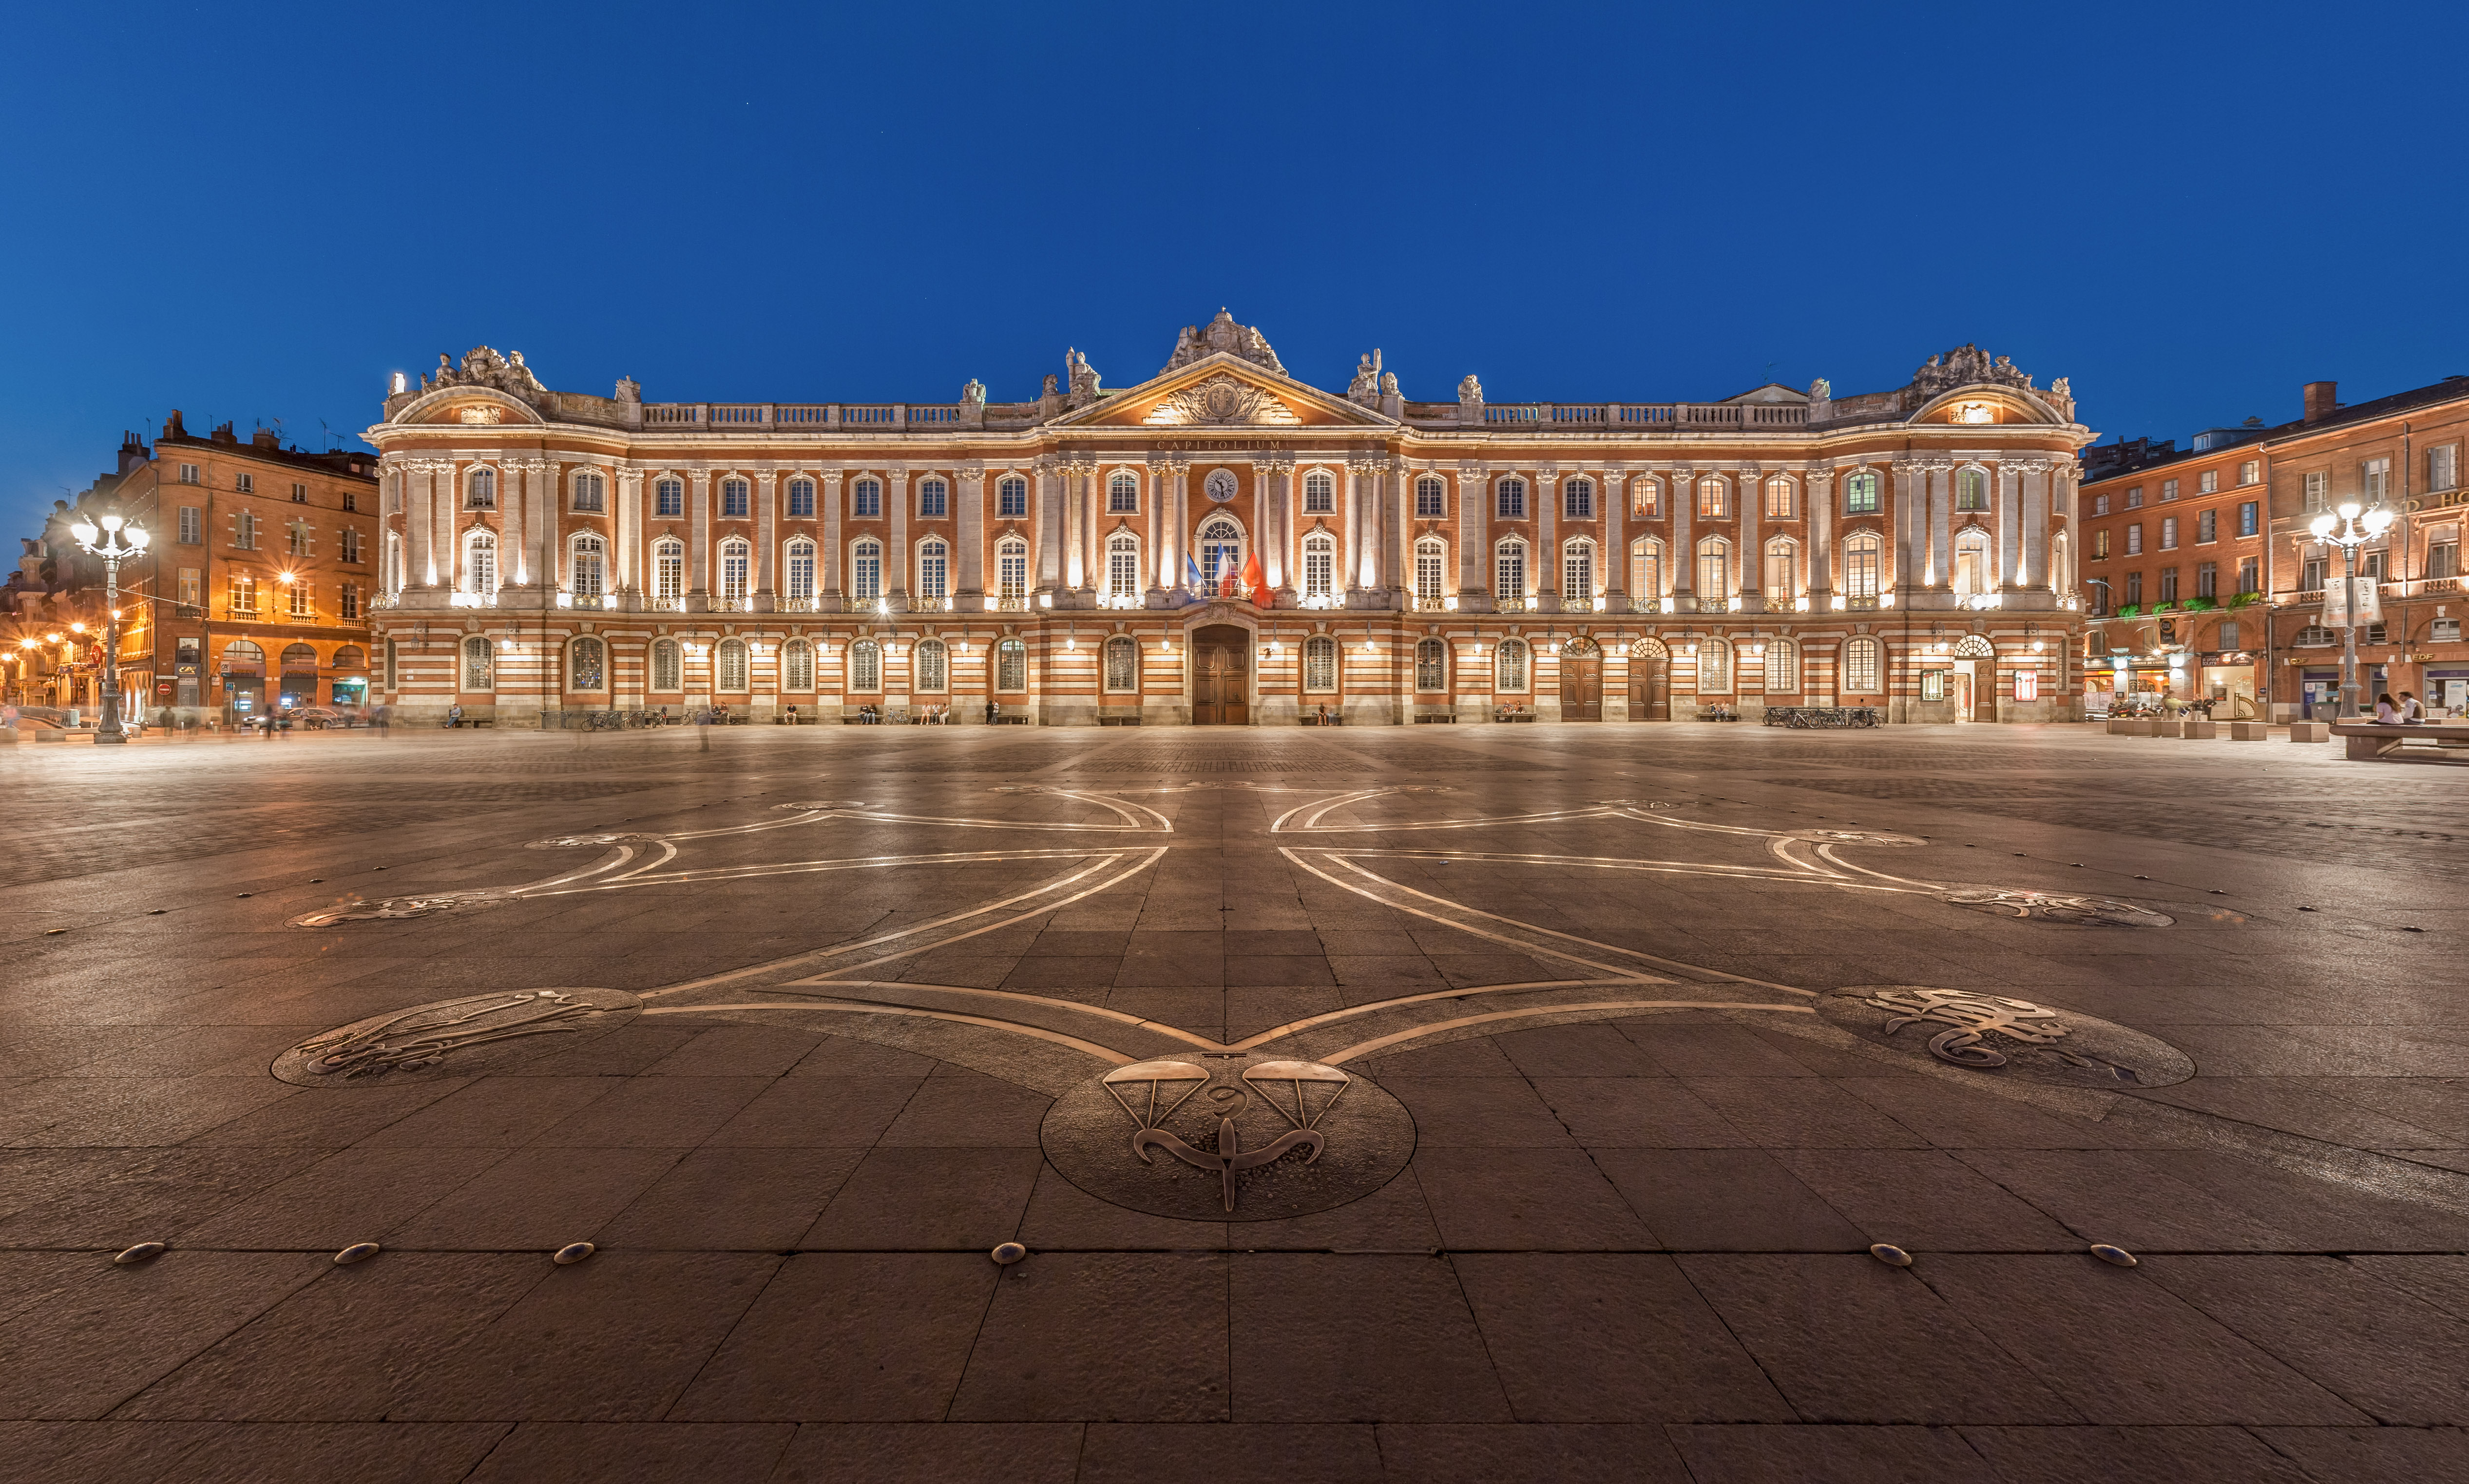 Depiction of Toulouse